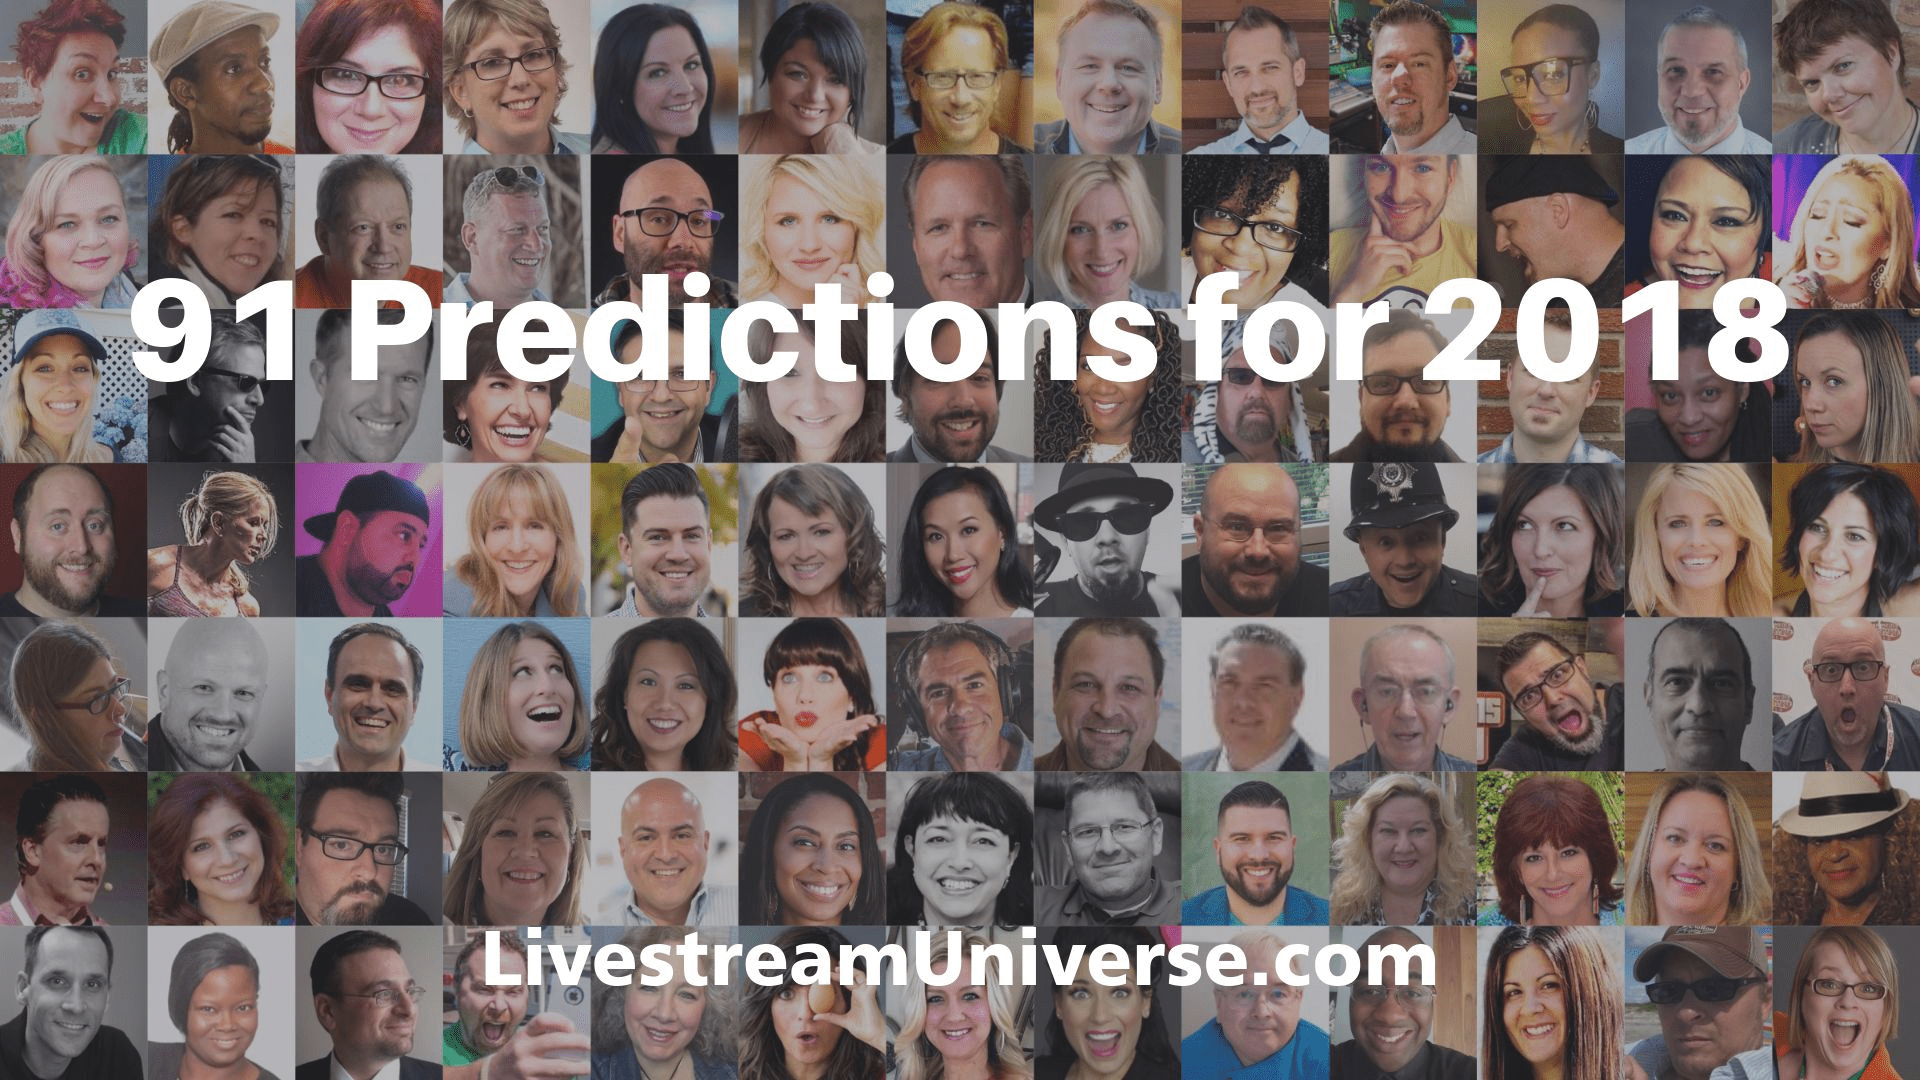 91 Livestreaming Predictions for 2018